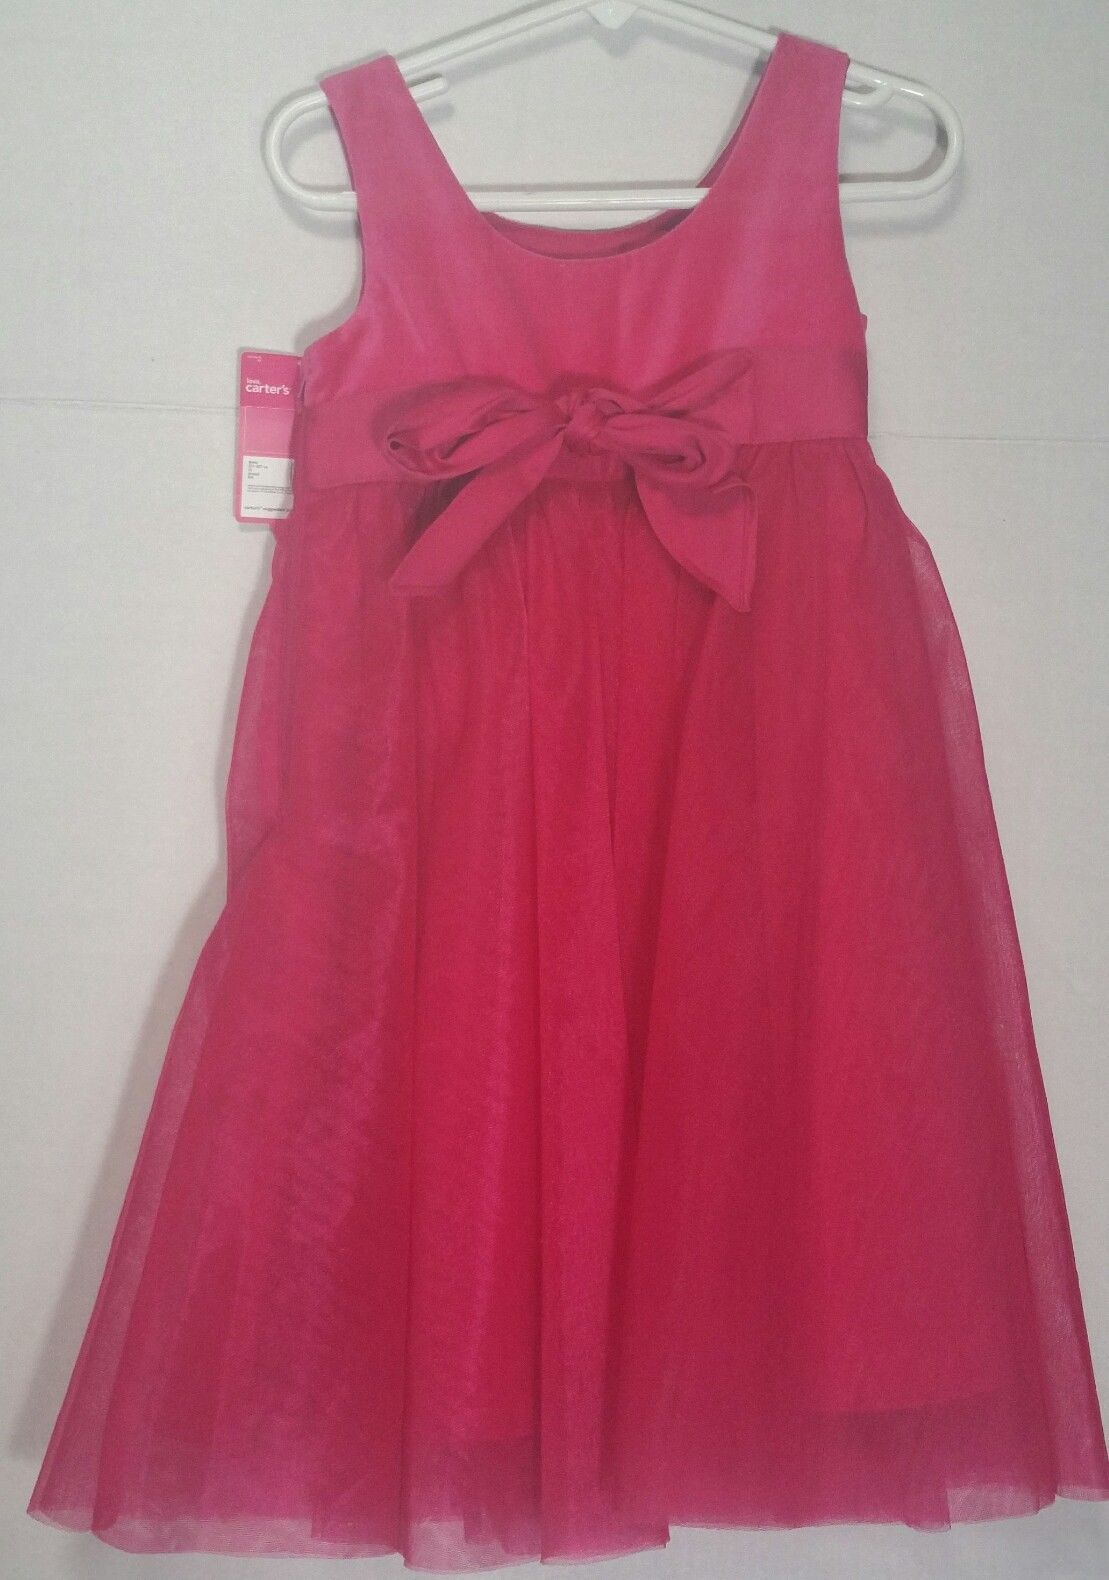 7831563db8b0 Carters Dress 2T Pink Tulle Velvet Toddler 2 and 50 similar items